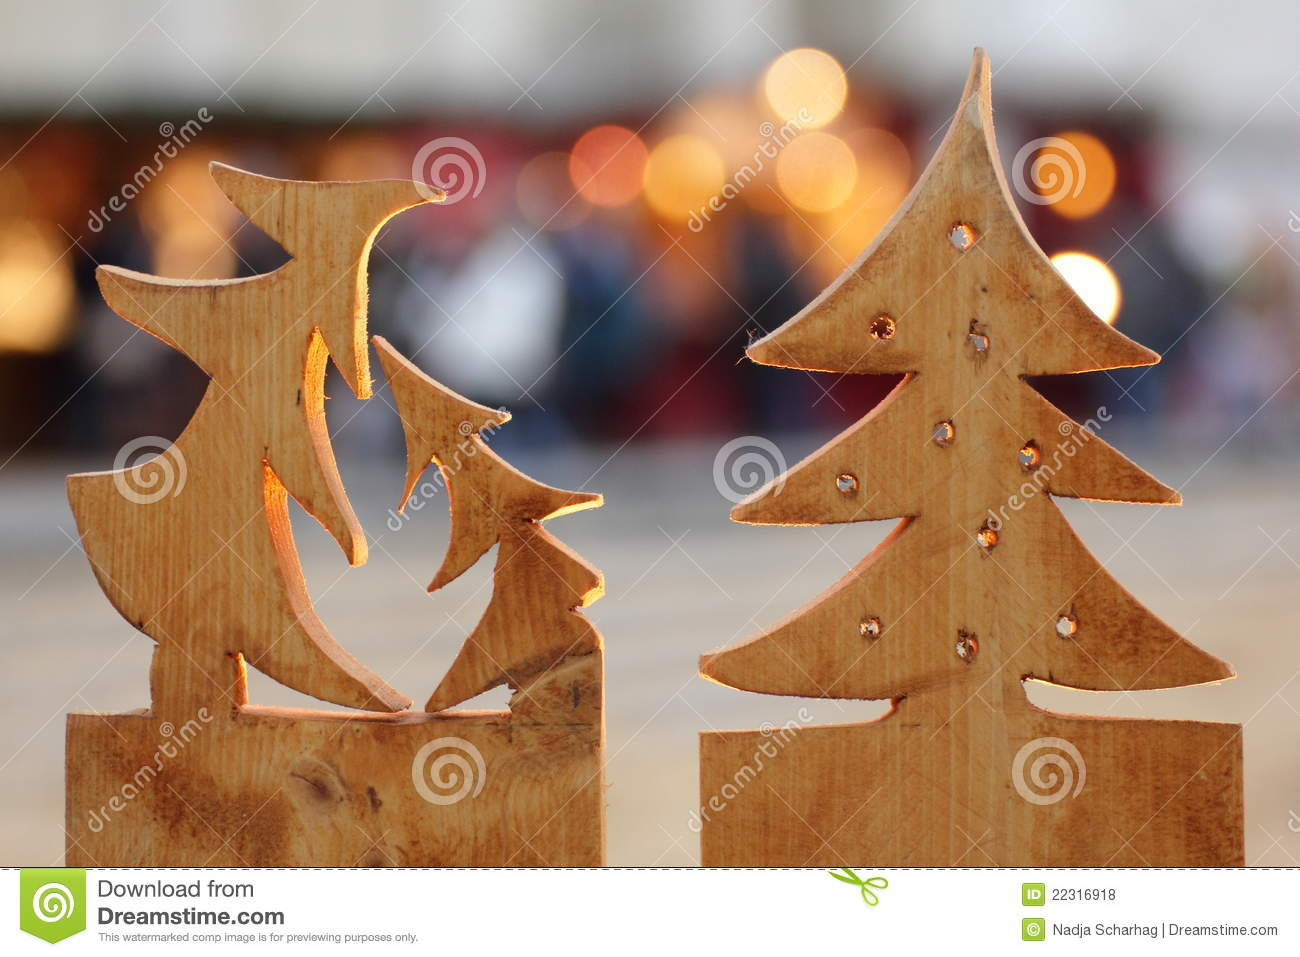 Exceptional Christmas Trees Prices #1: Wooden-christmas-trees-22316918.jpg